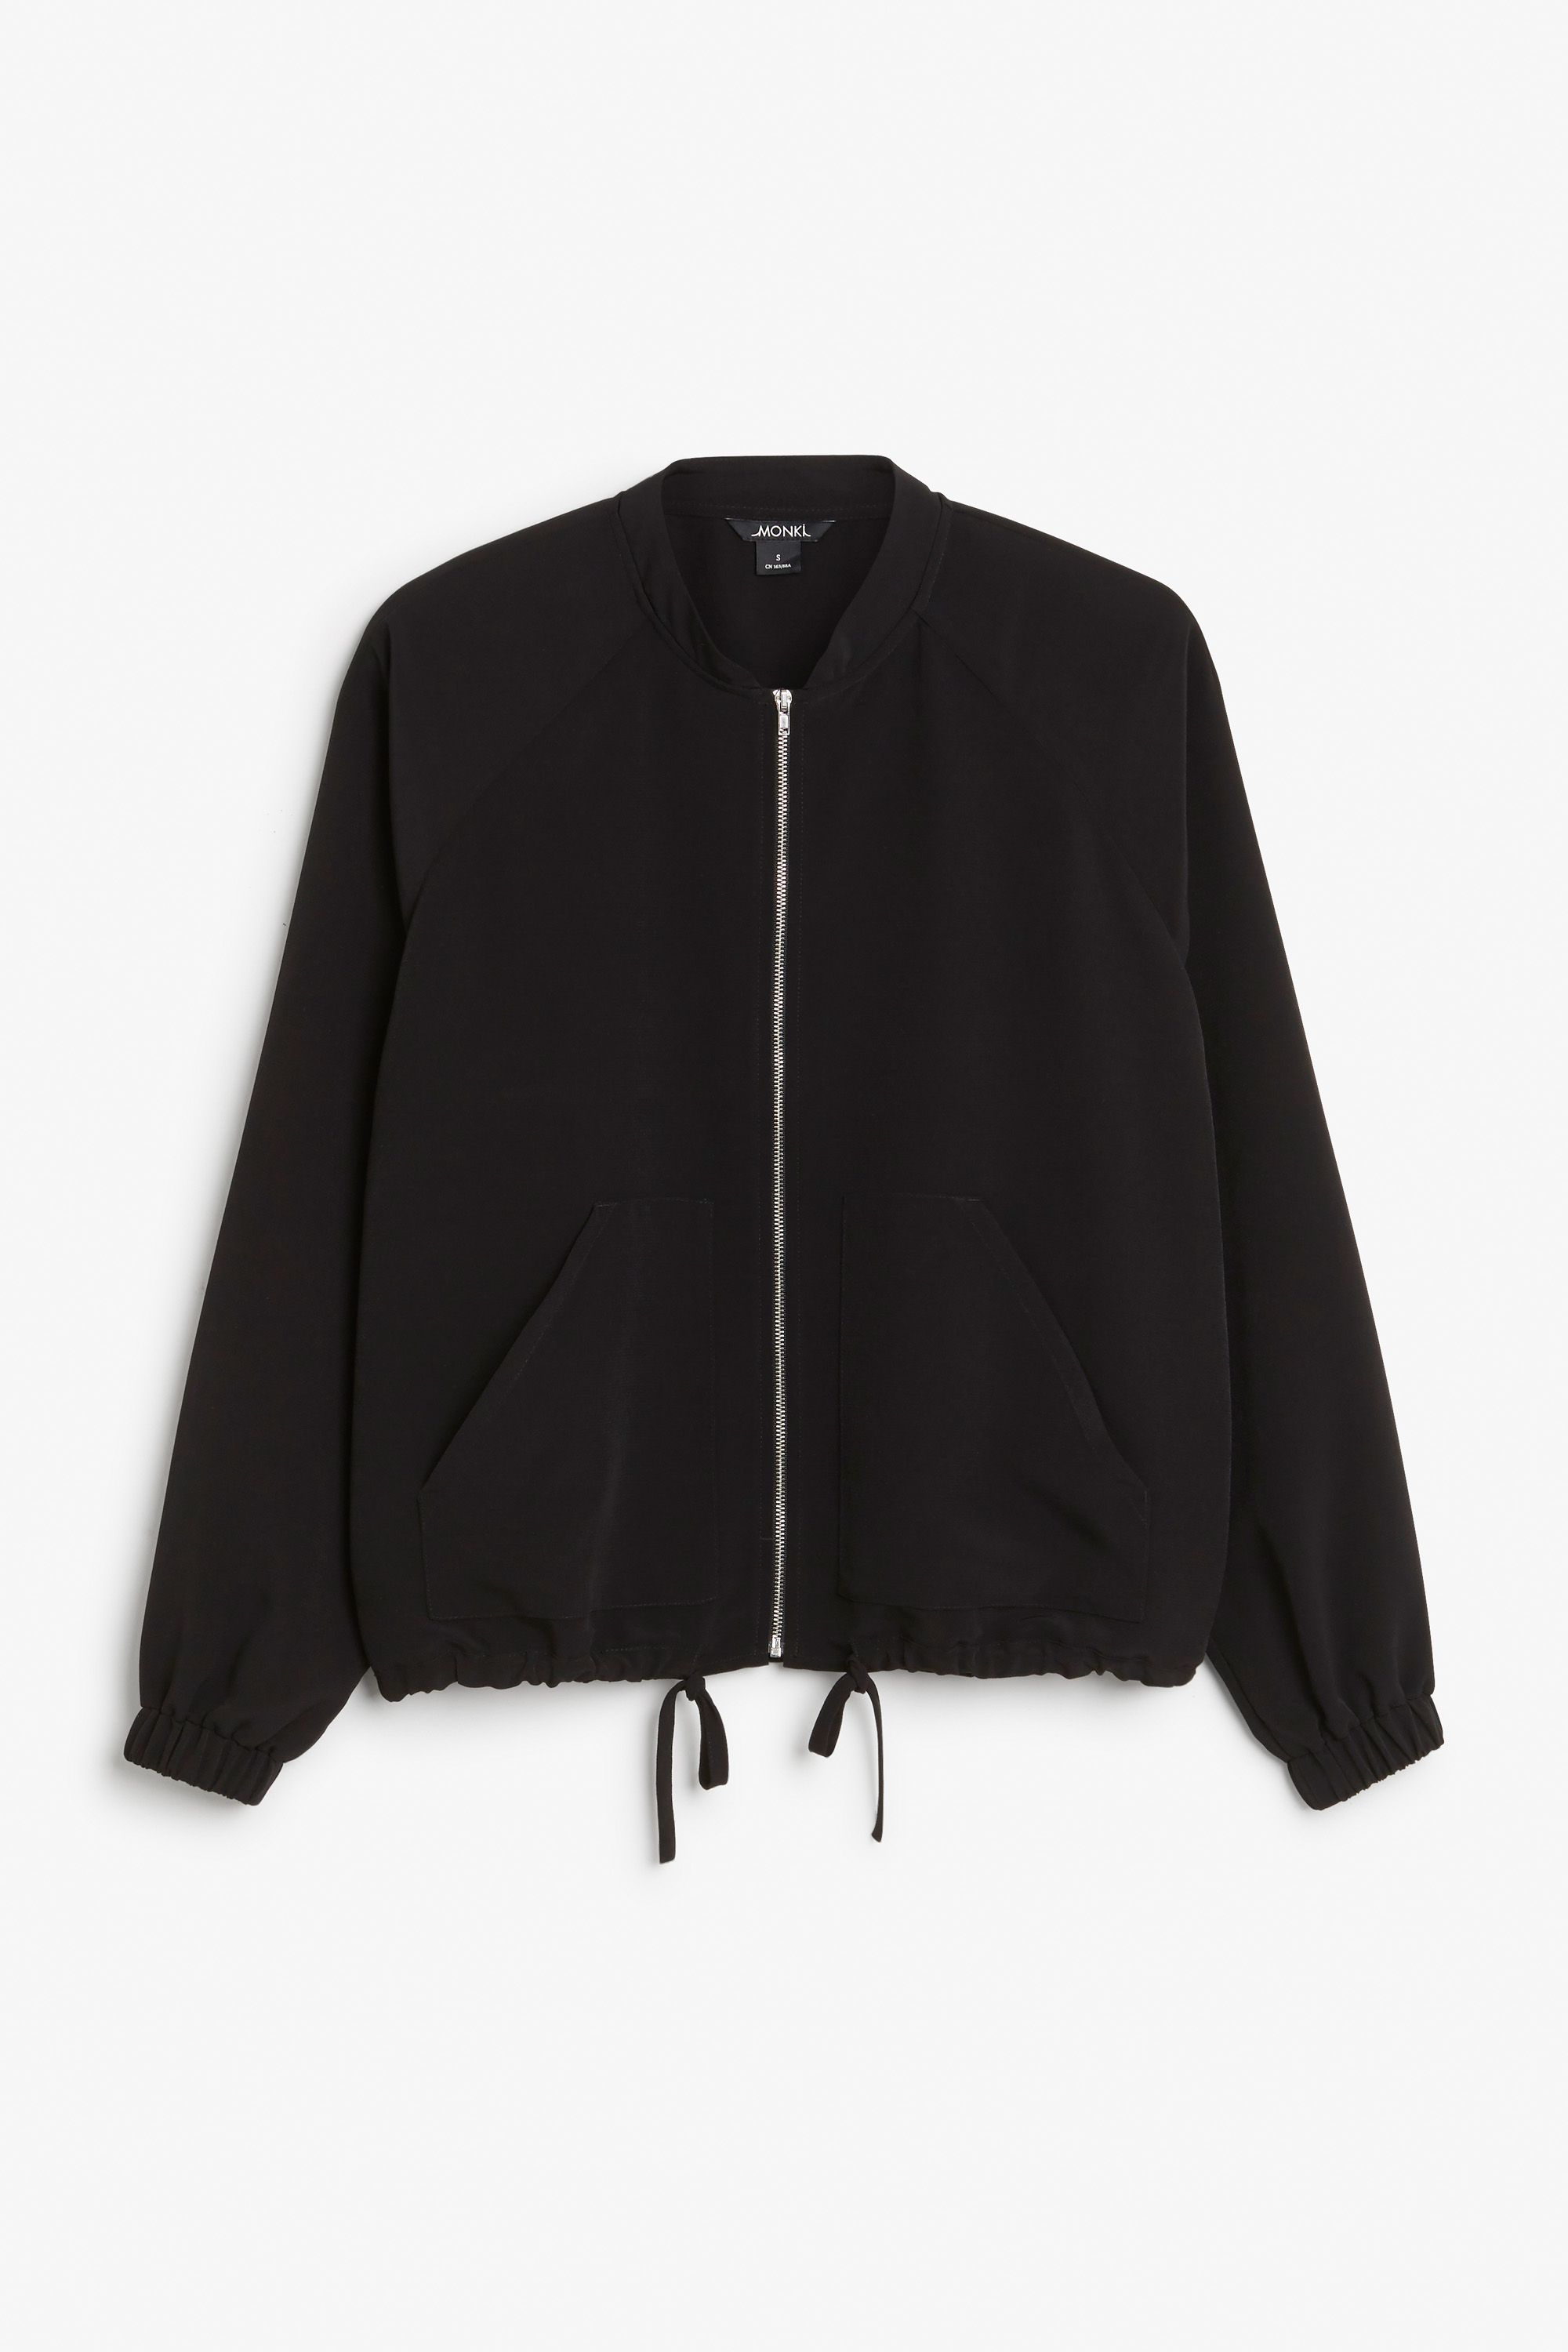 This A-MAZING zip-up blouse is perfect to throw on top of one of those base layers.